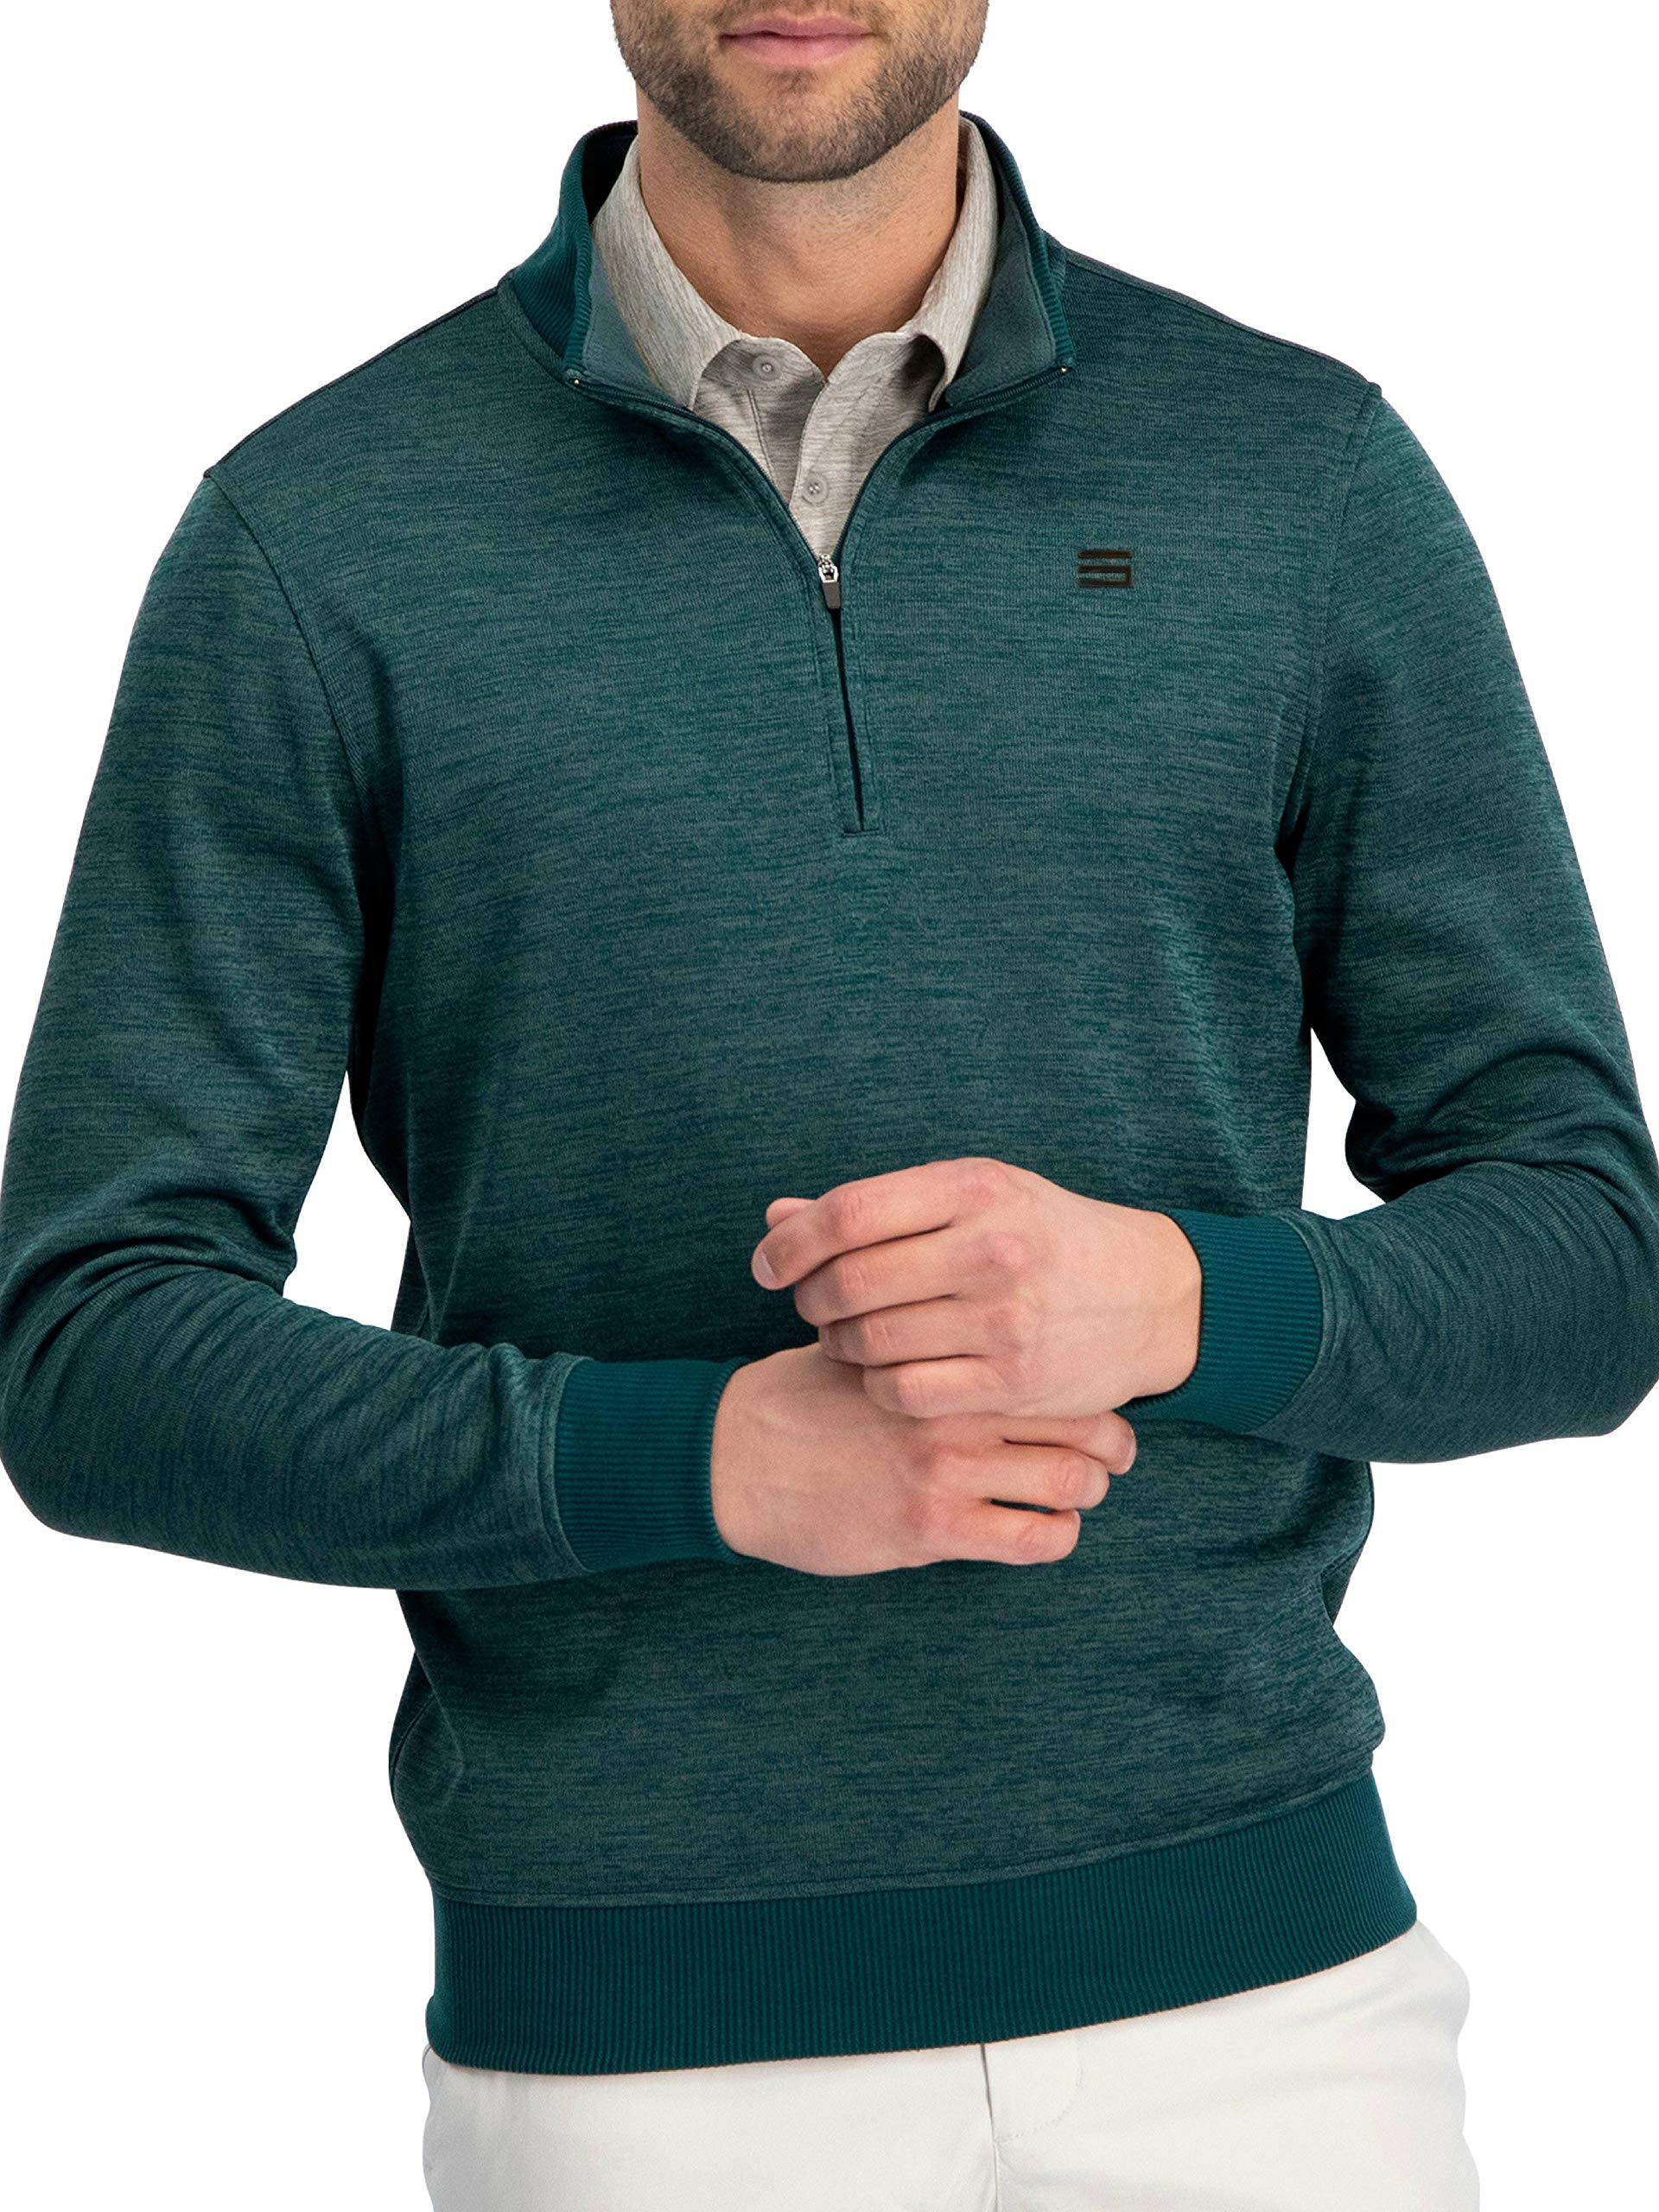 Dry Fit Pullover Sweaters for Men - Quarter Zip Fleece Golf Jacket - Tailored Fit